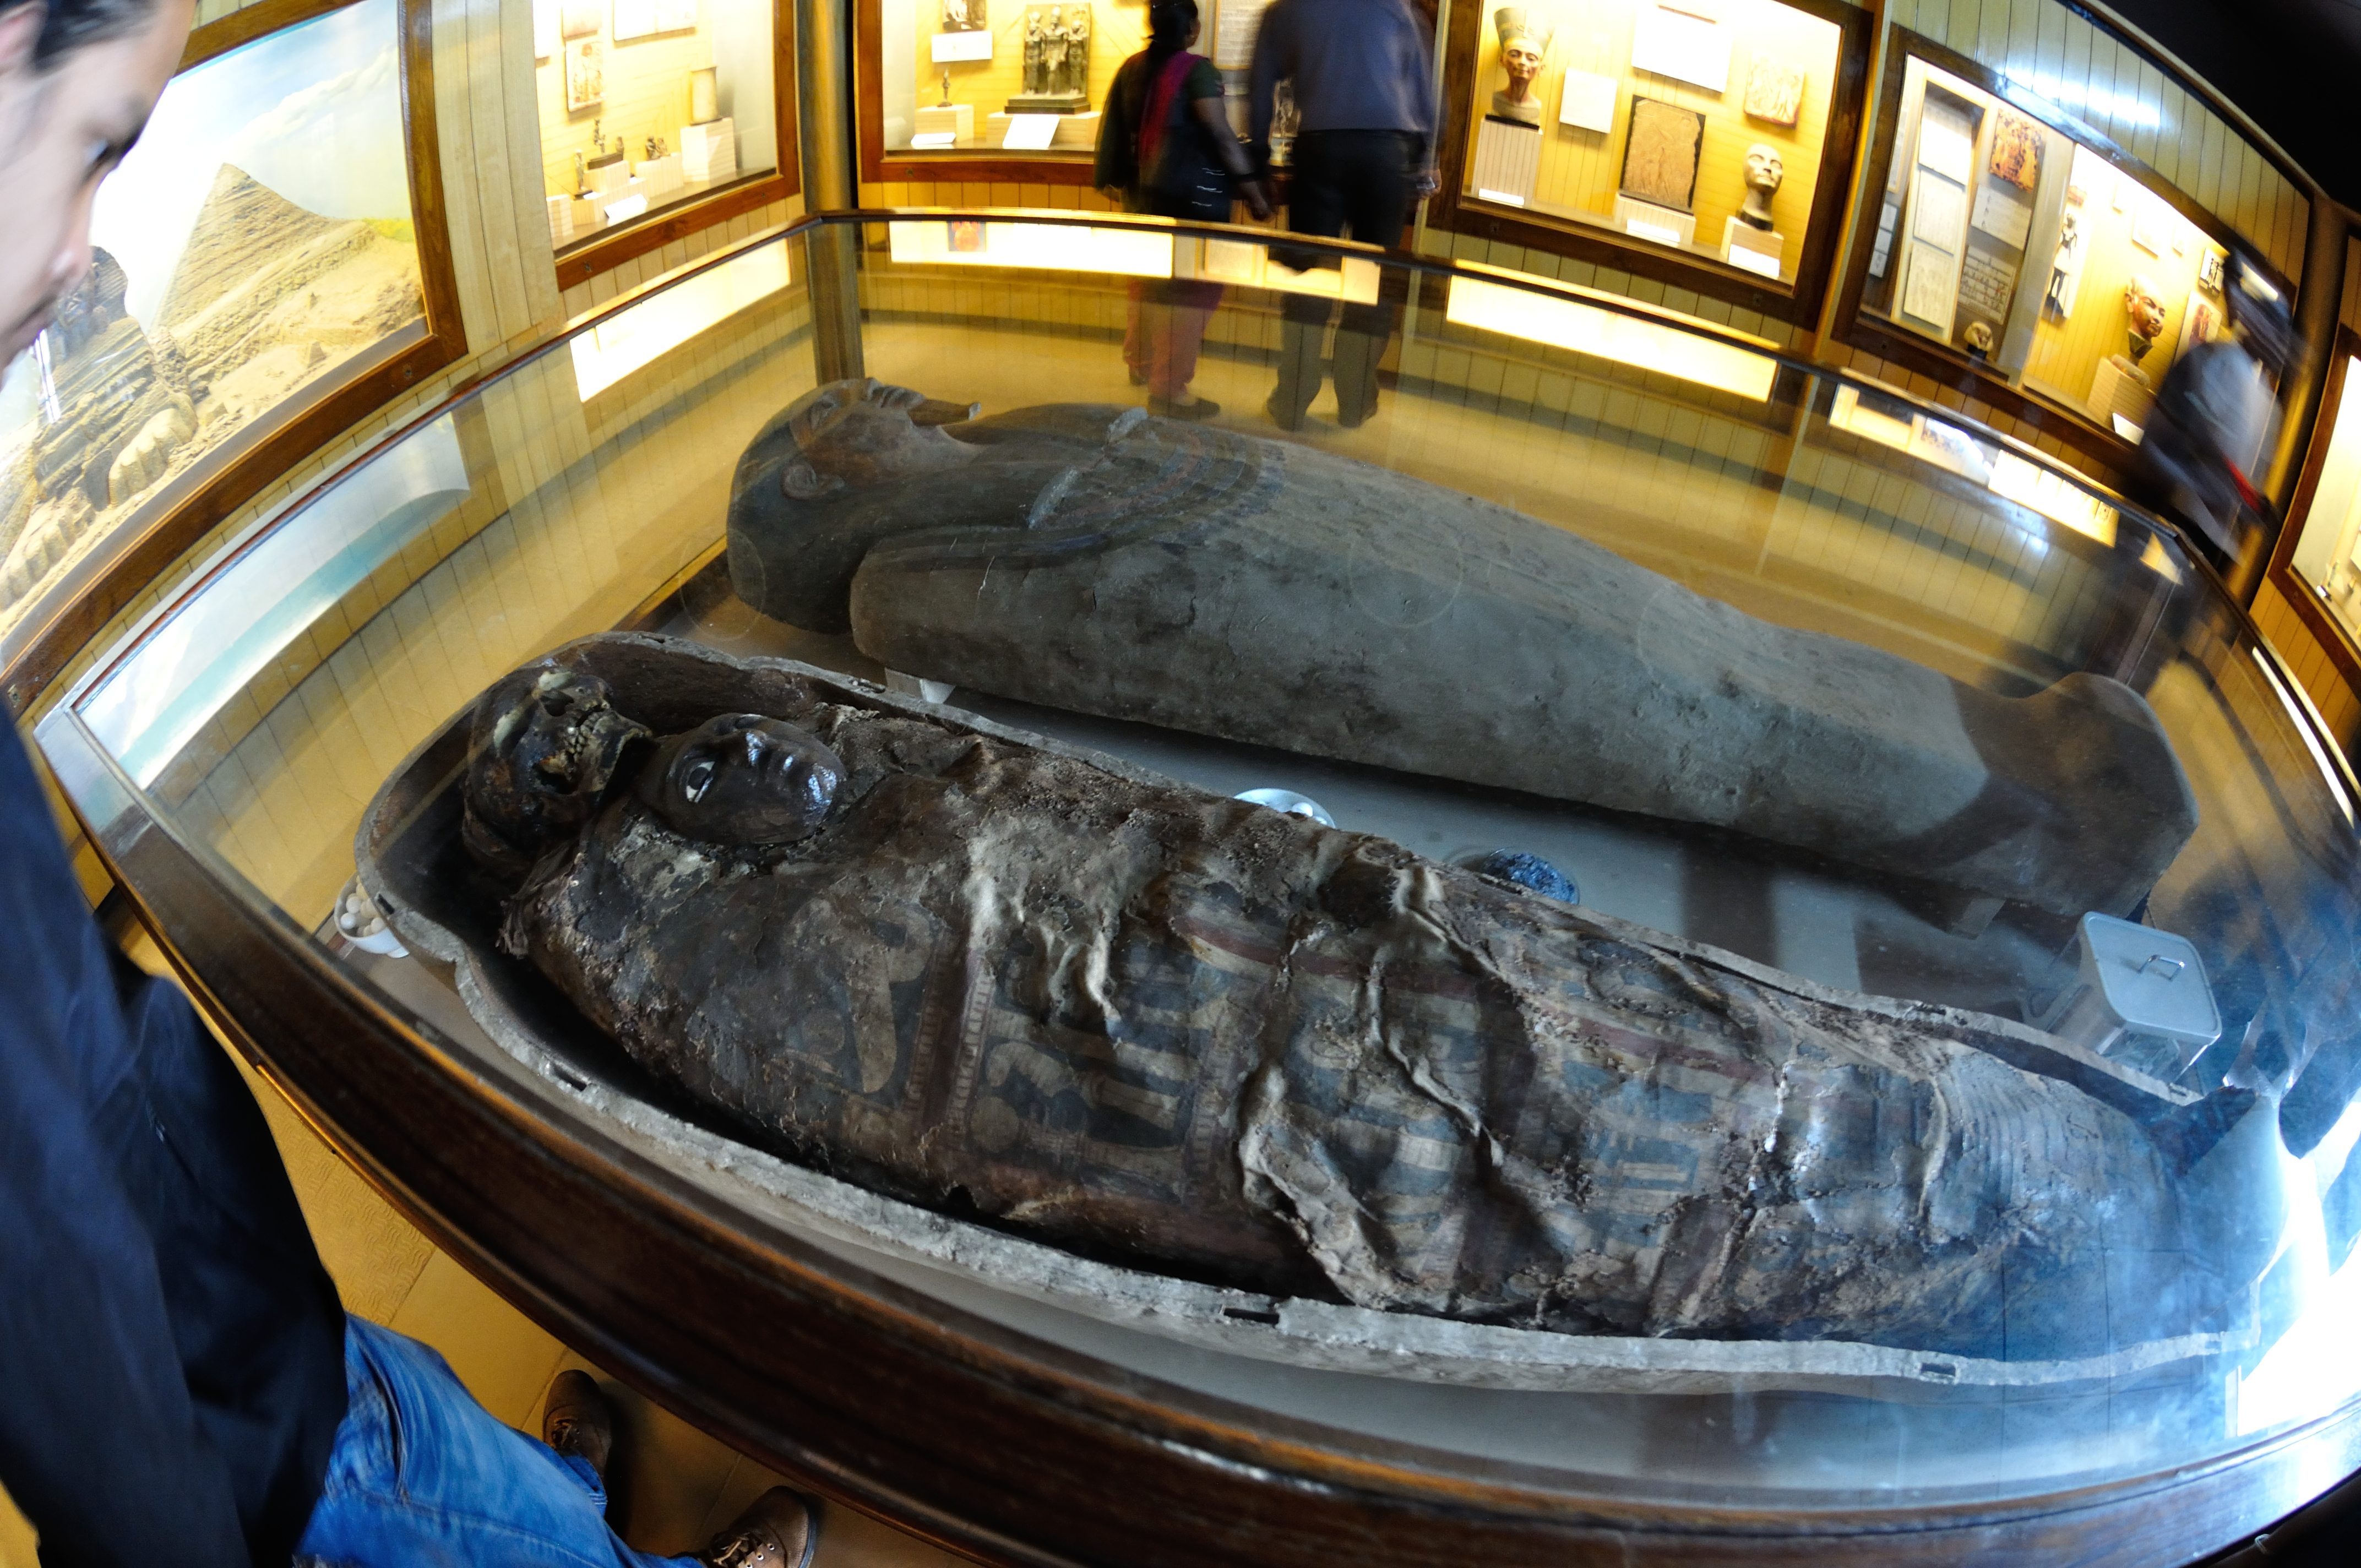 Egyptian human mummy at the Indian Museum, Kolkotta